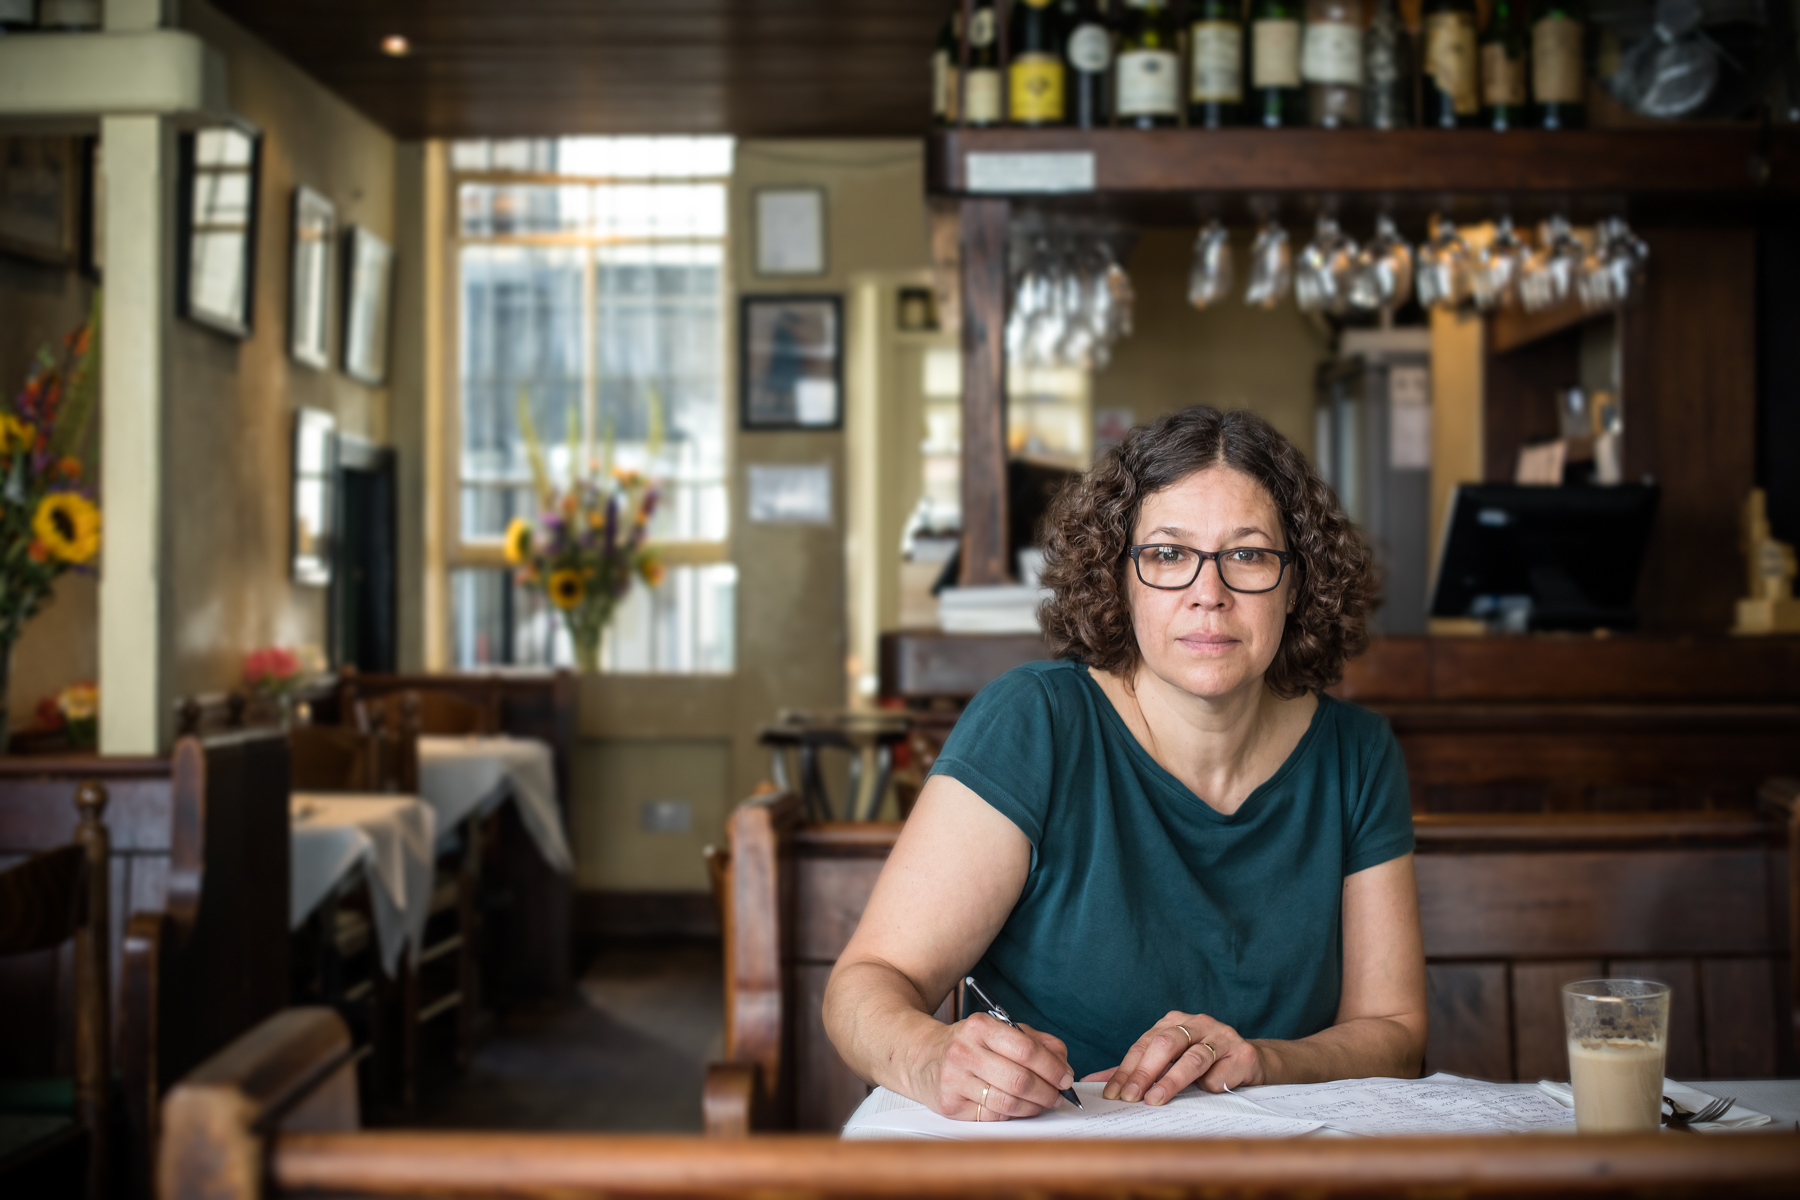 Melissa has been at the Soho institution, Andrew Edmunds, for 23 years.